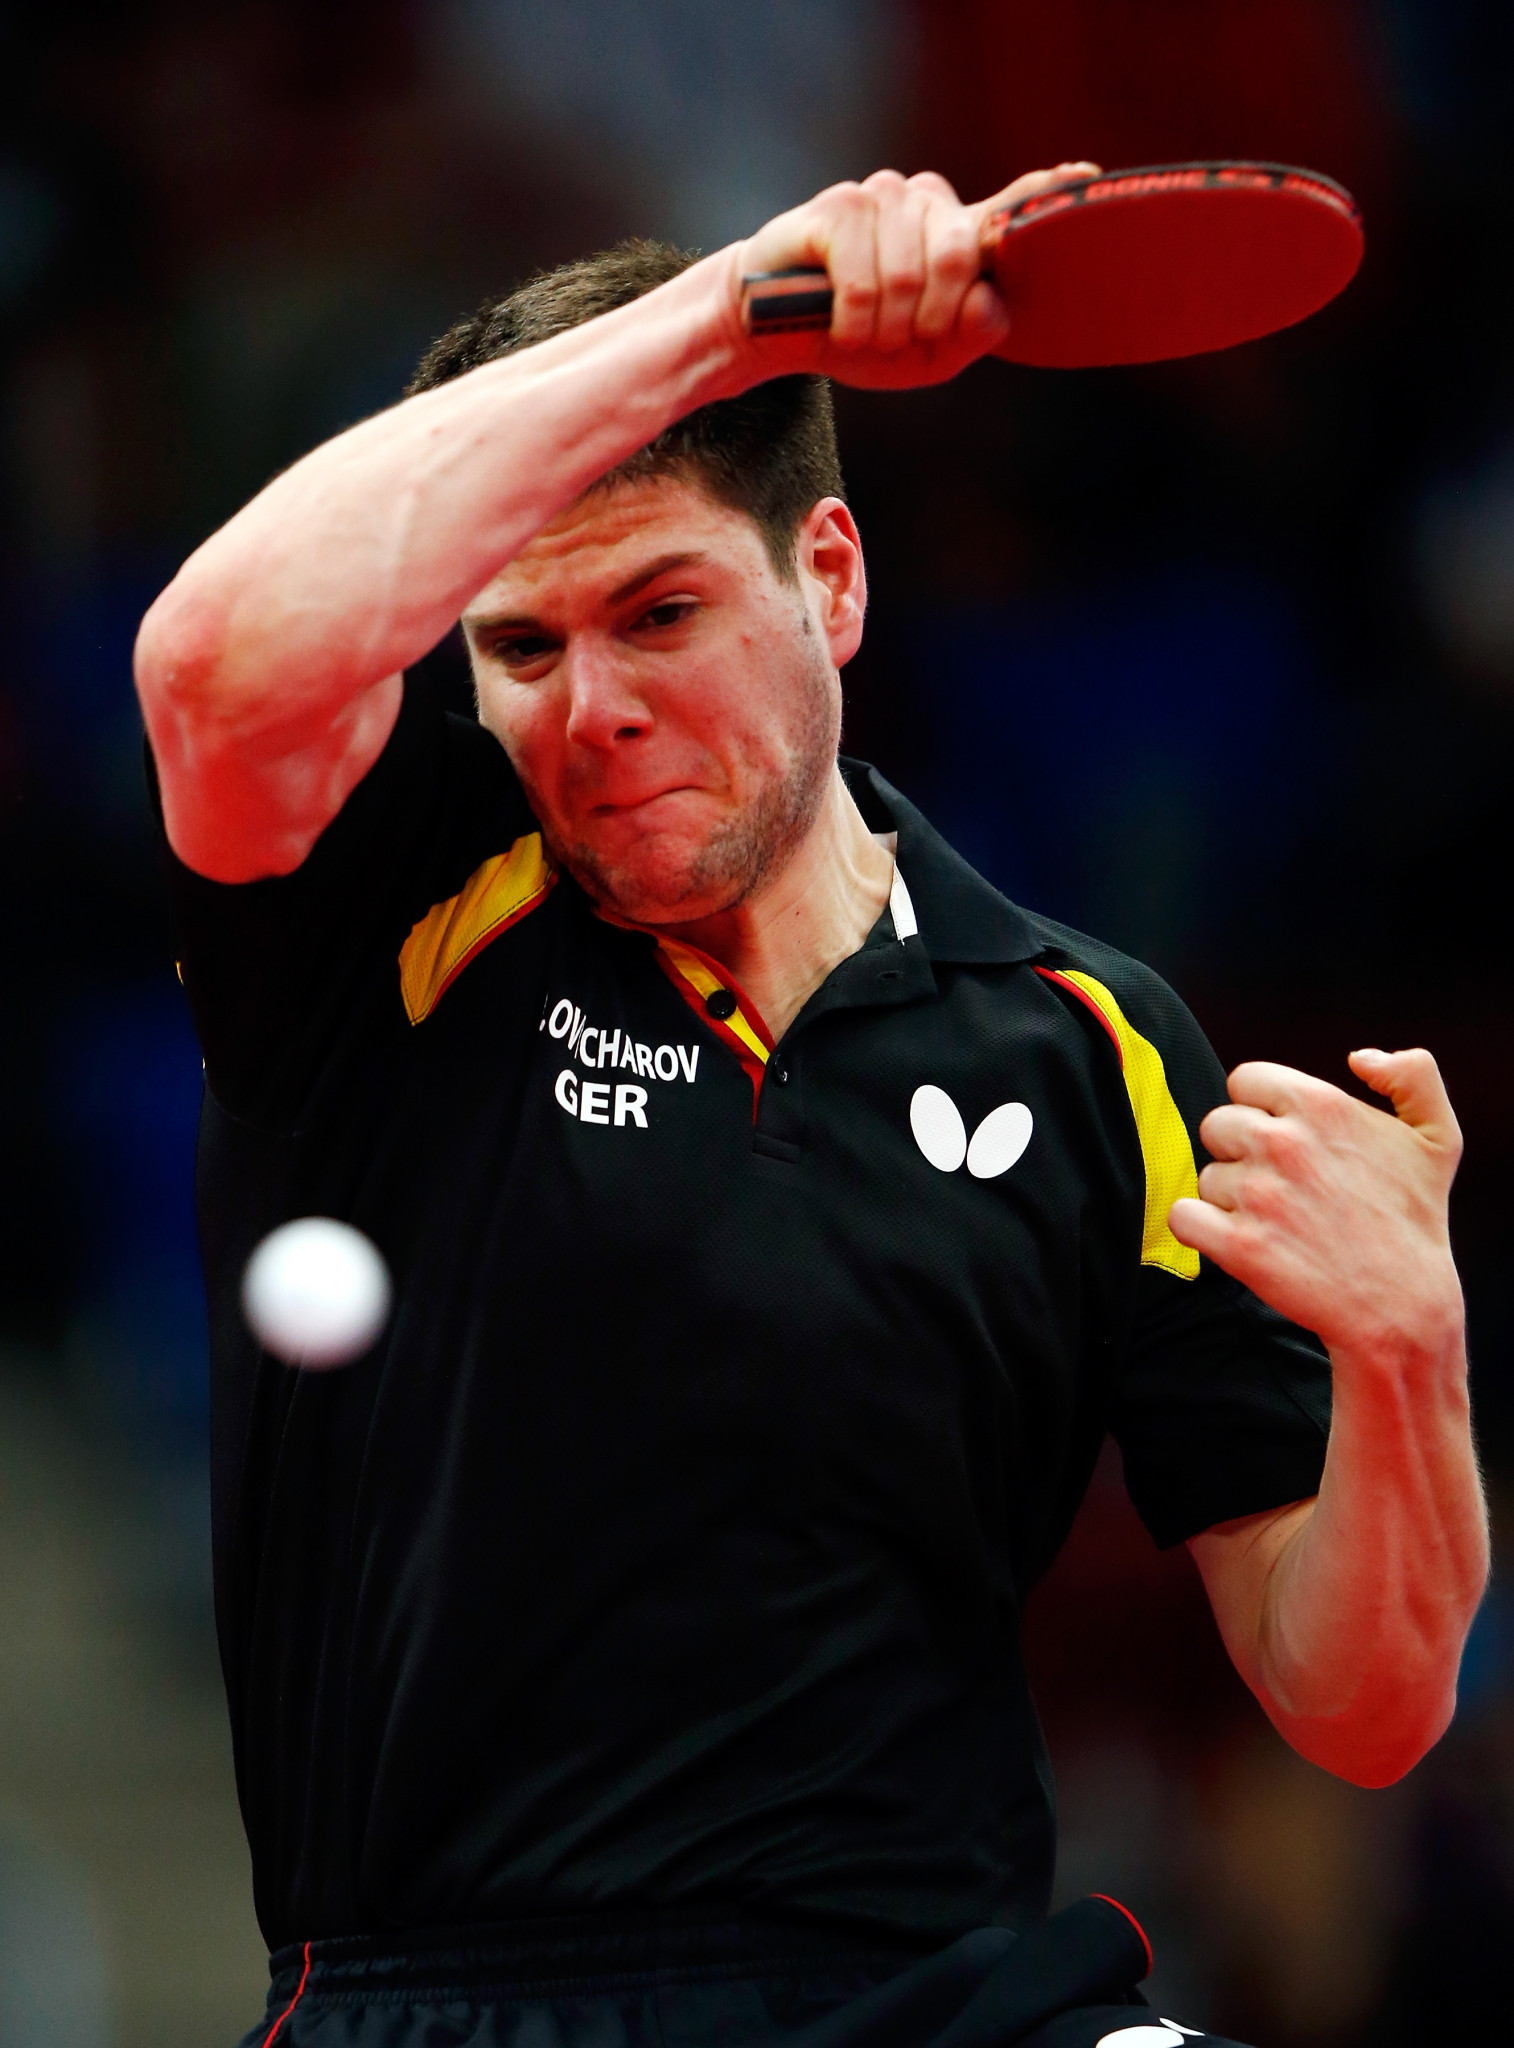 Germany's Dimitrij Ovtcharov won the men's singles at the 2015 European Games in Baku ©Getty Images